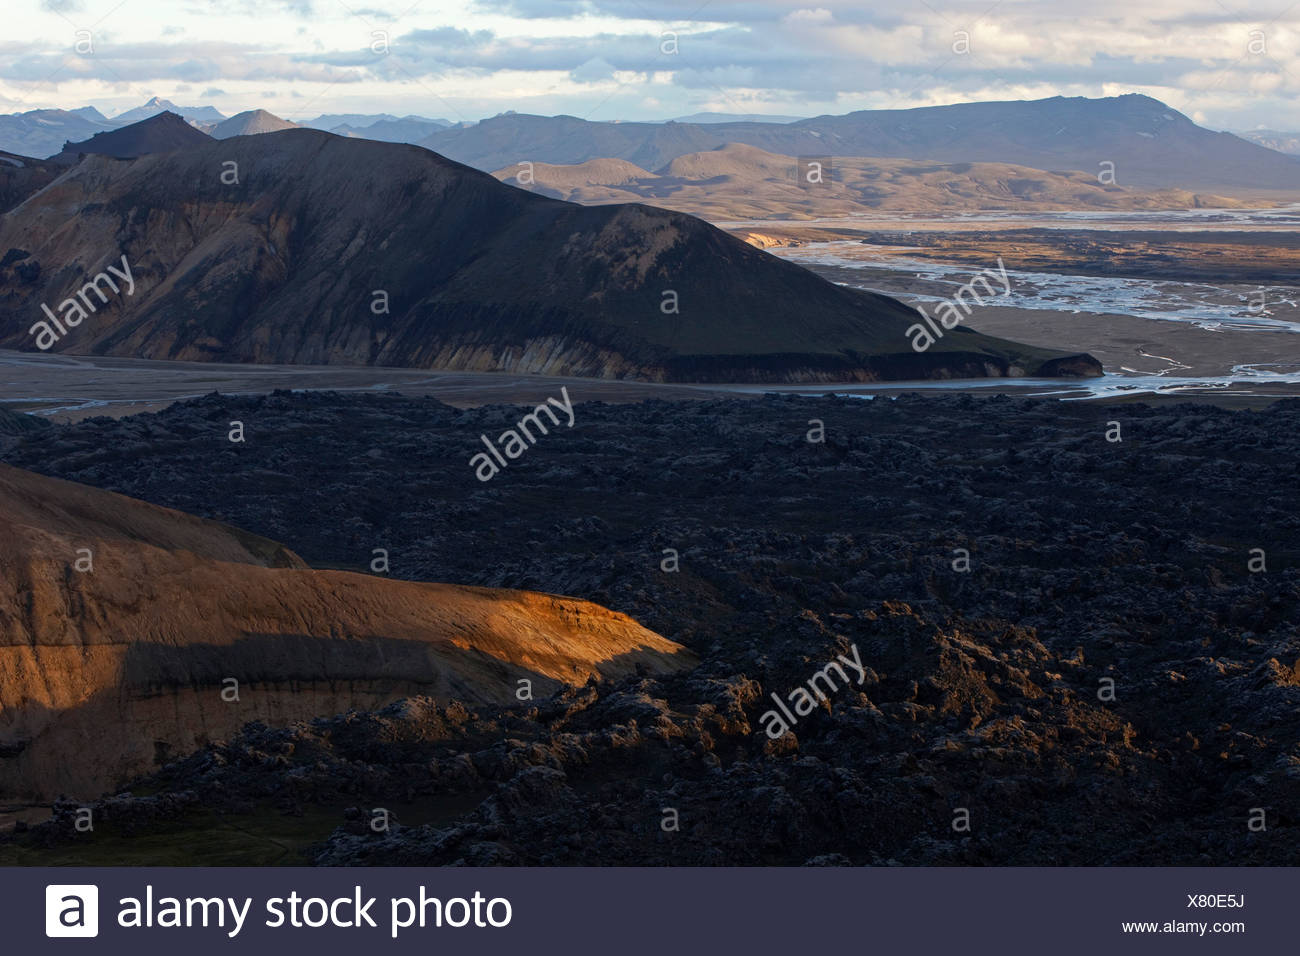 View of peaceful lava field against mountains and clouds in Landmannalaugar, Iceland - Stock Image